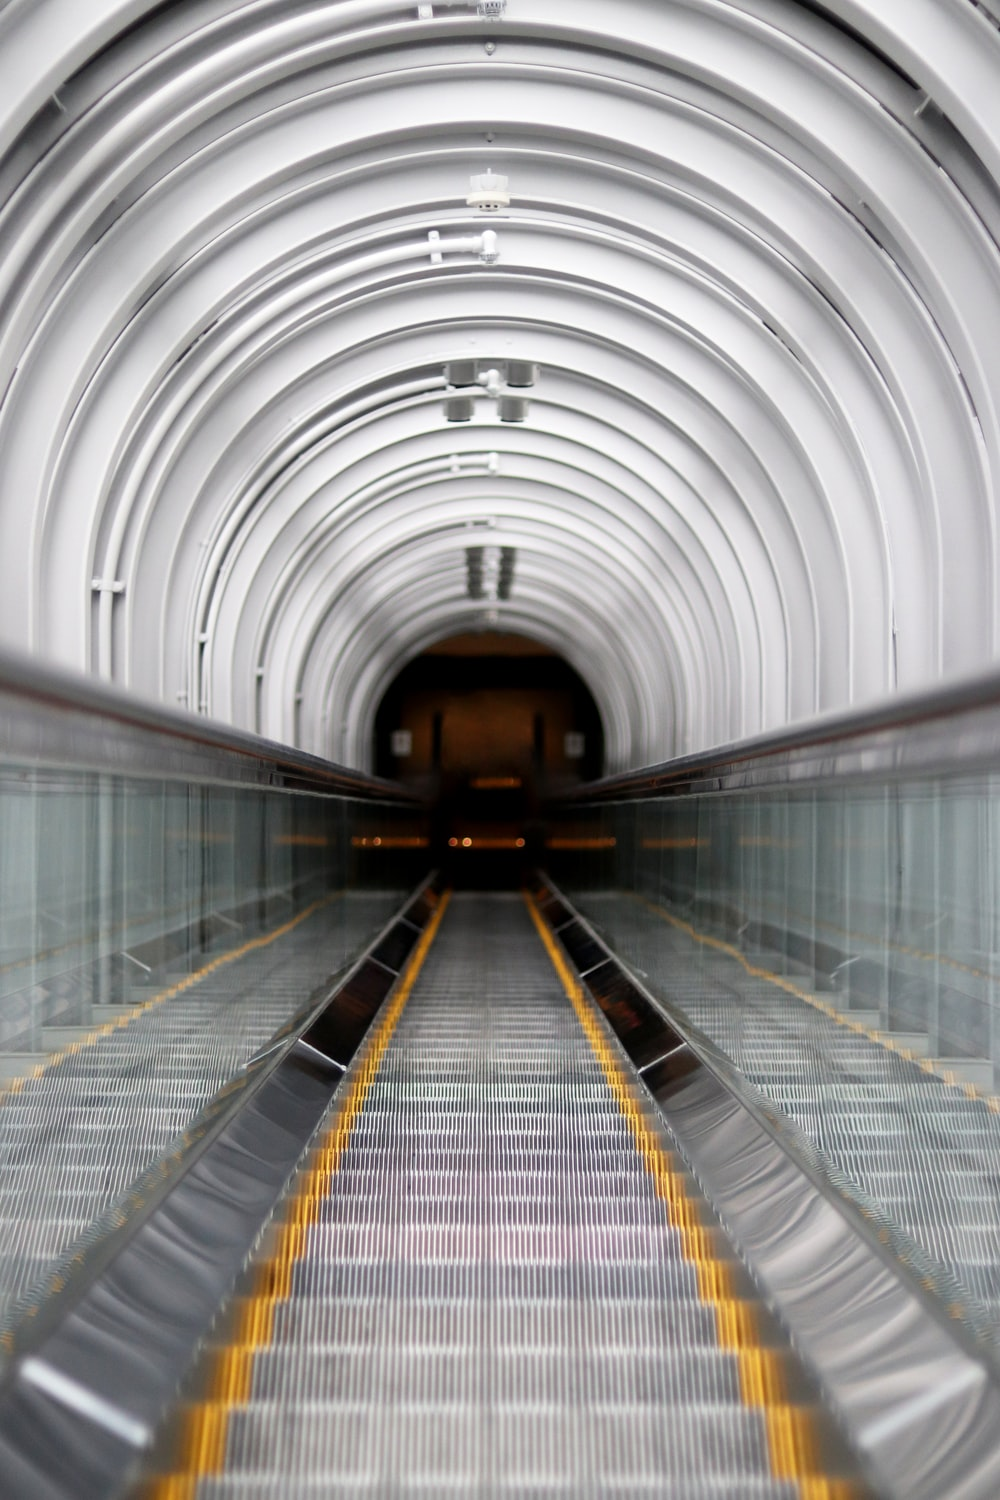 stainless steel escalator with no people